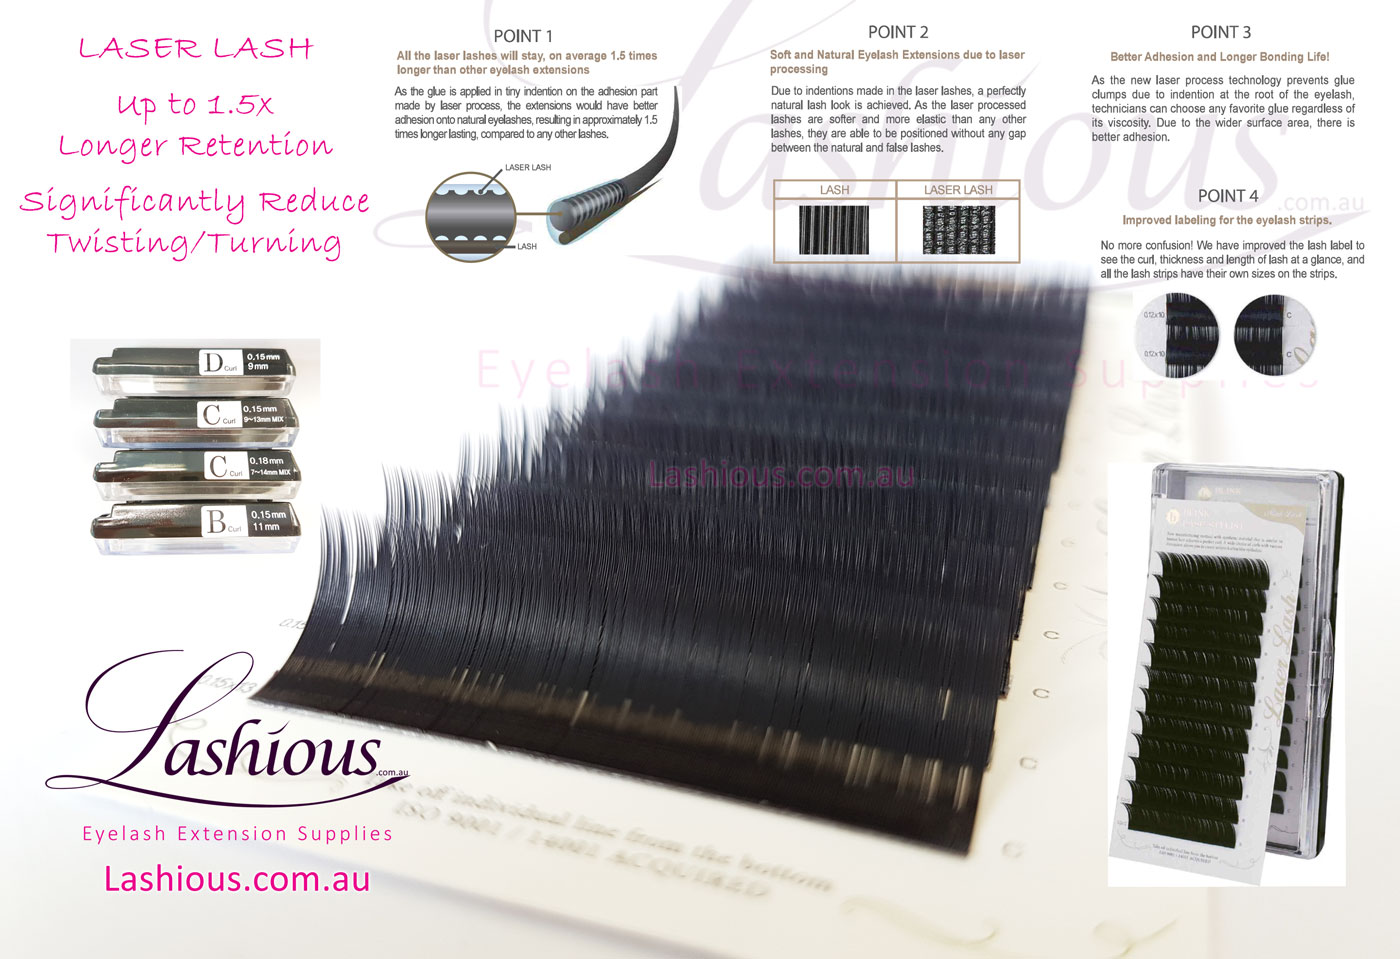 Laser Lash Silk Eyelash Extension Lashes Lashious